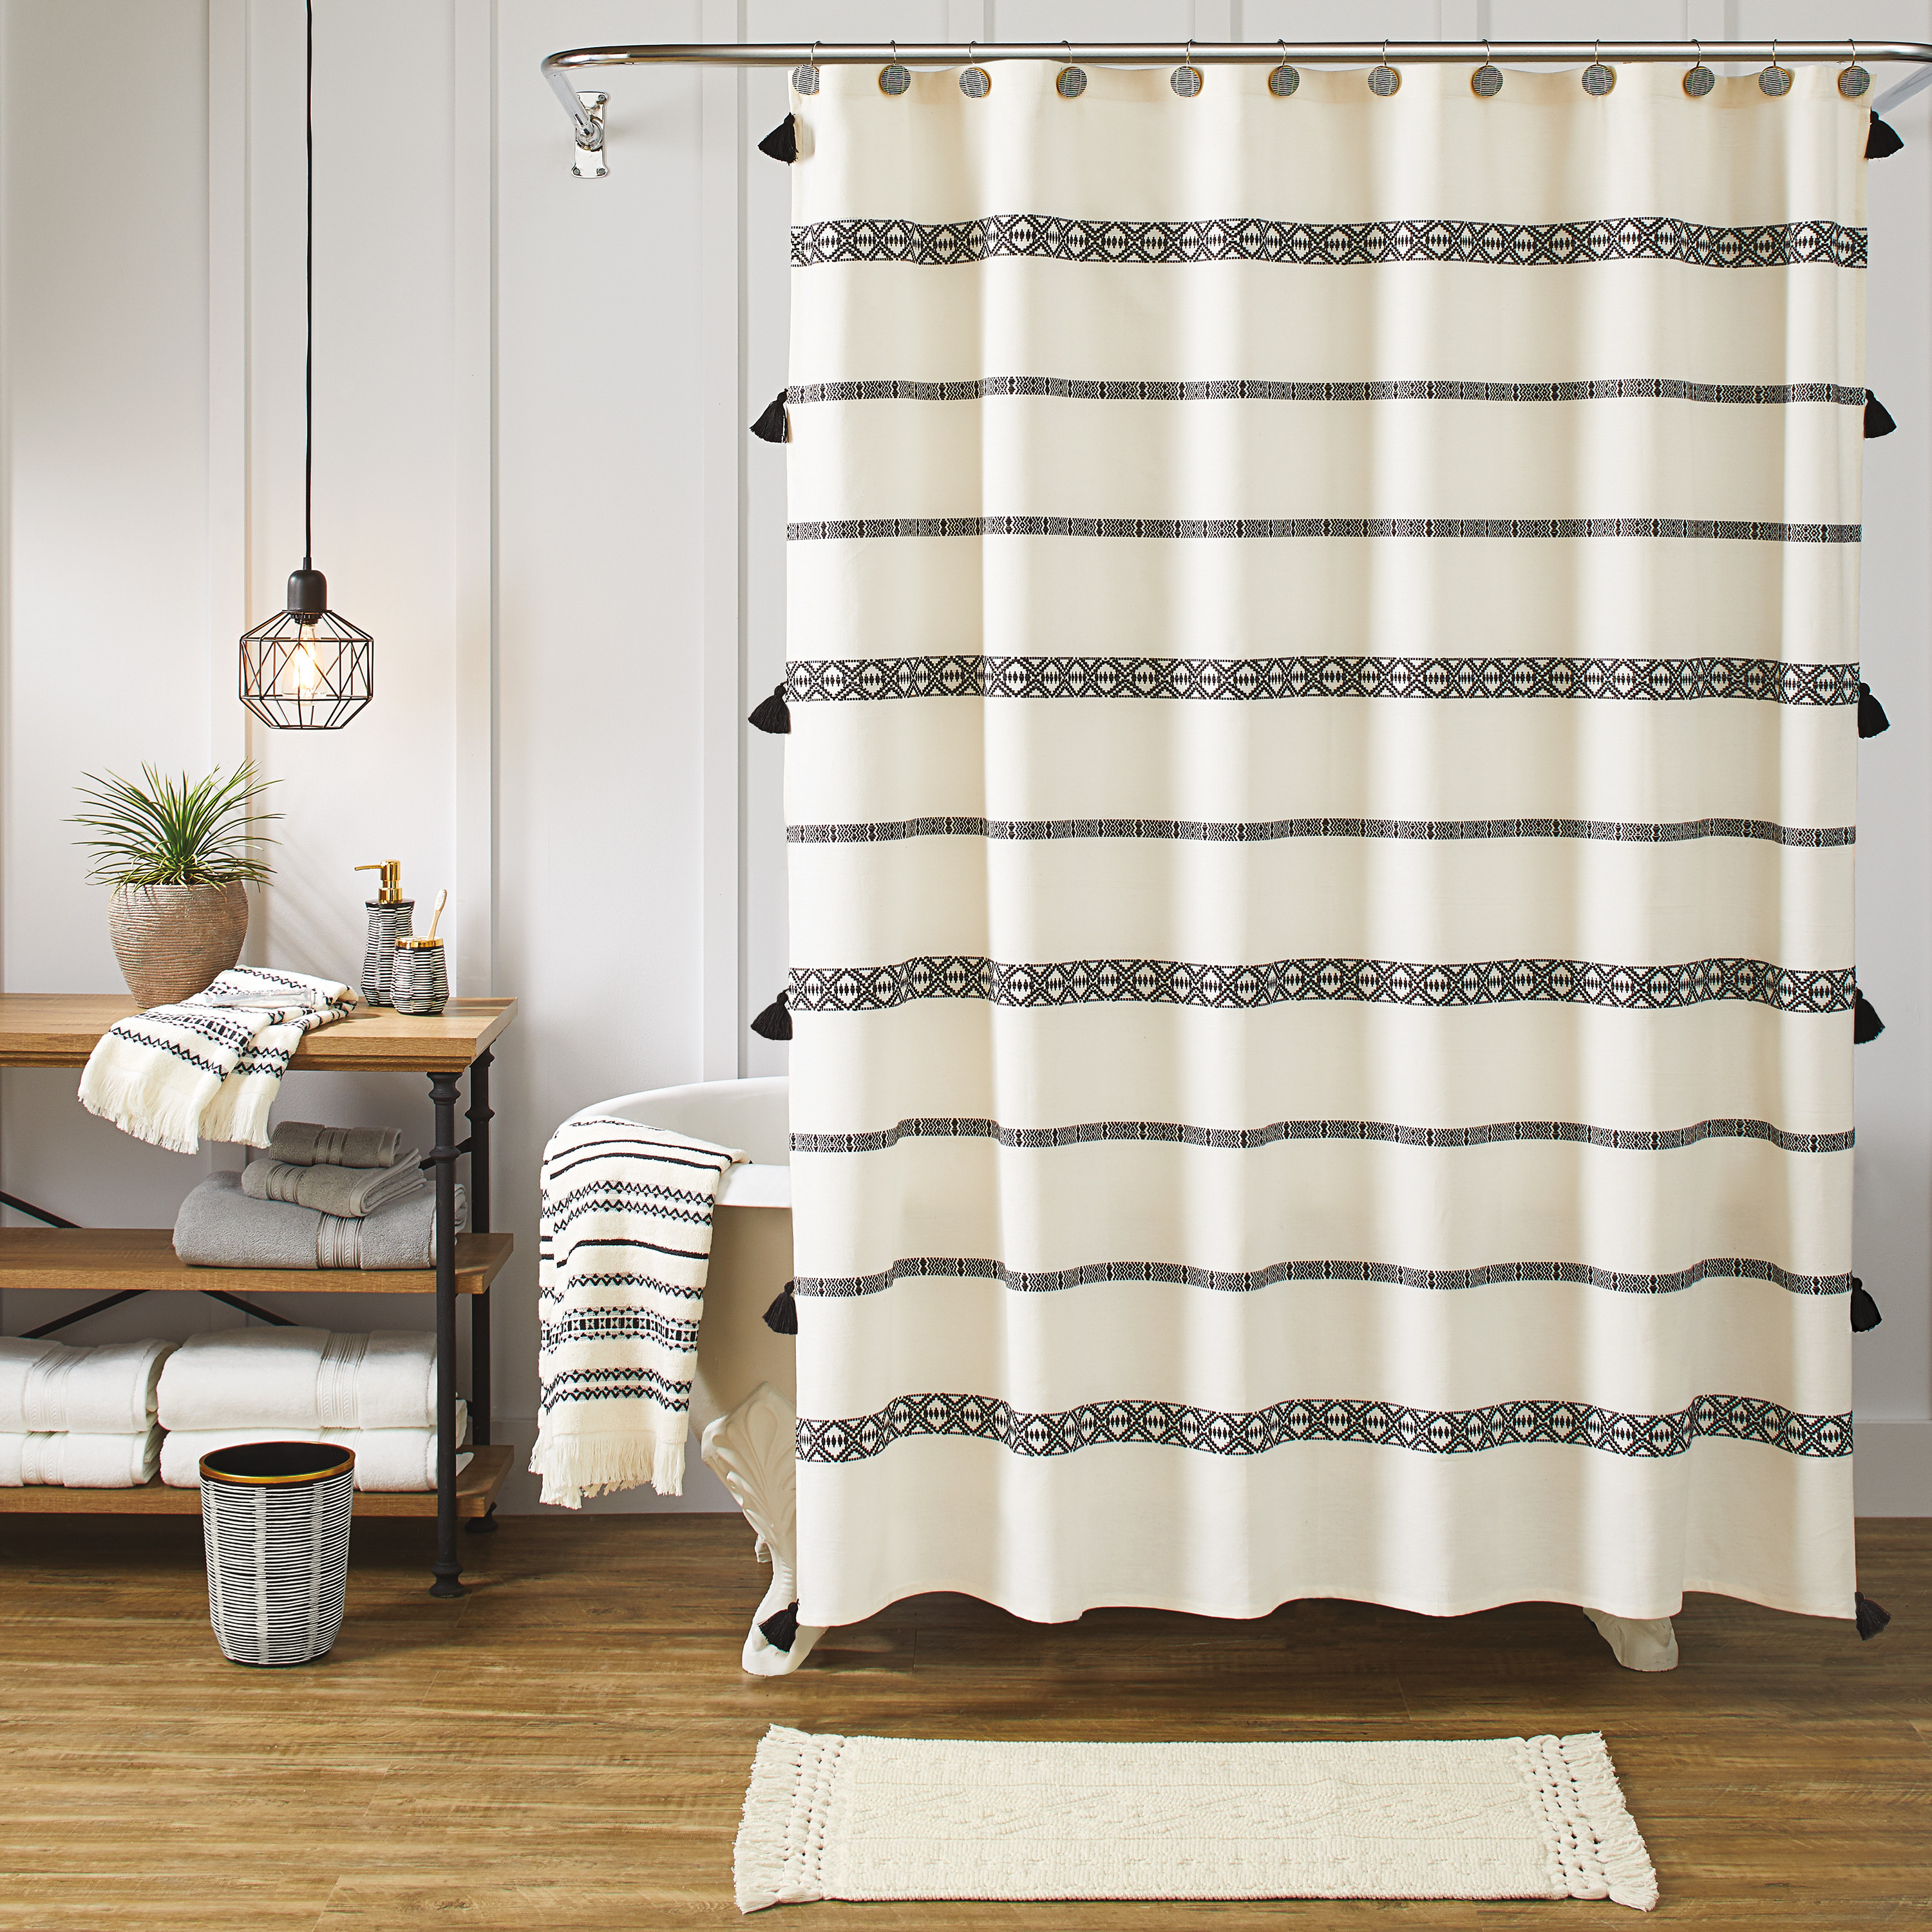 Beautiful Better Homes And Gardens Tribal Chic Shower Curtain